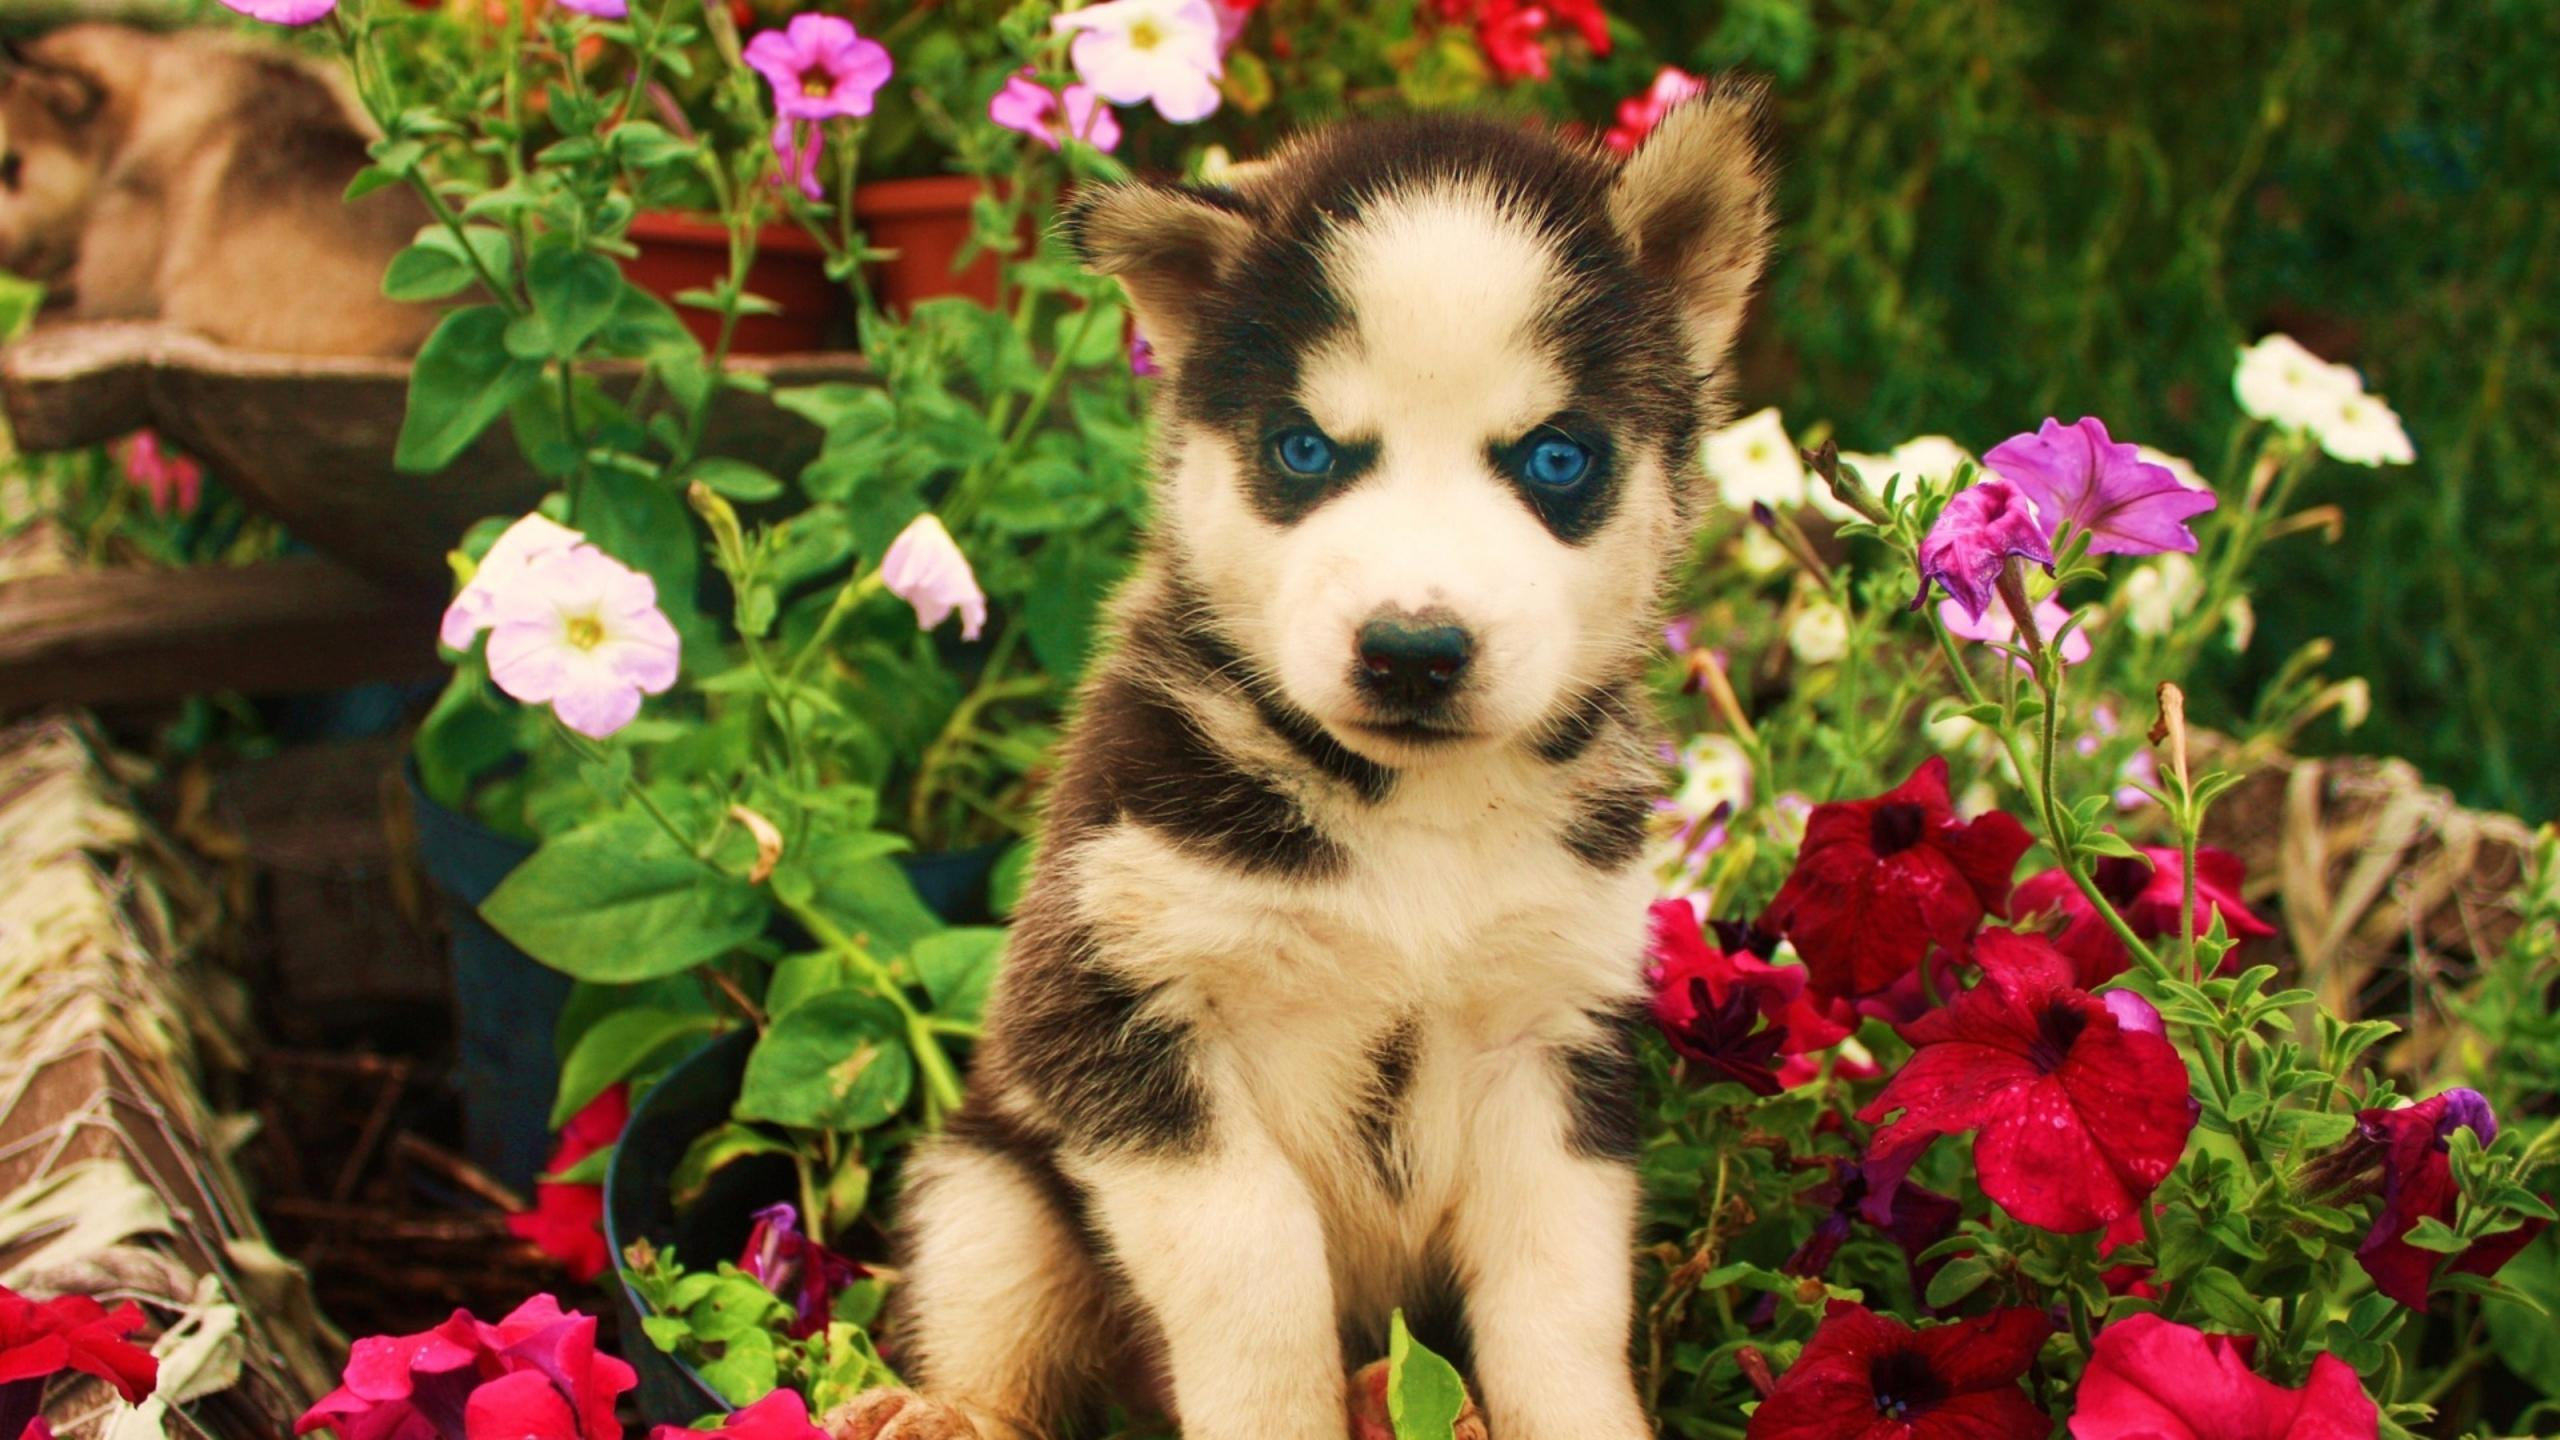 A Cute Husky Puppy With Blue Eyes Between Flowers Wallpaper Download